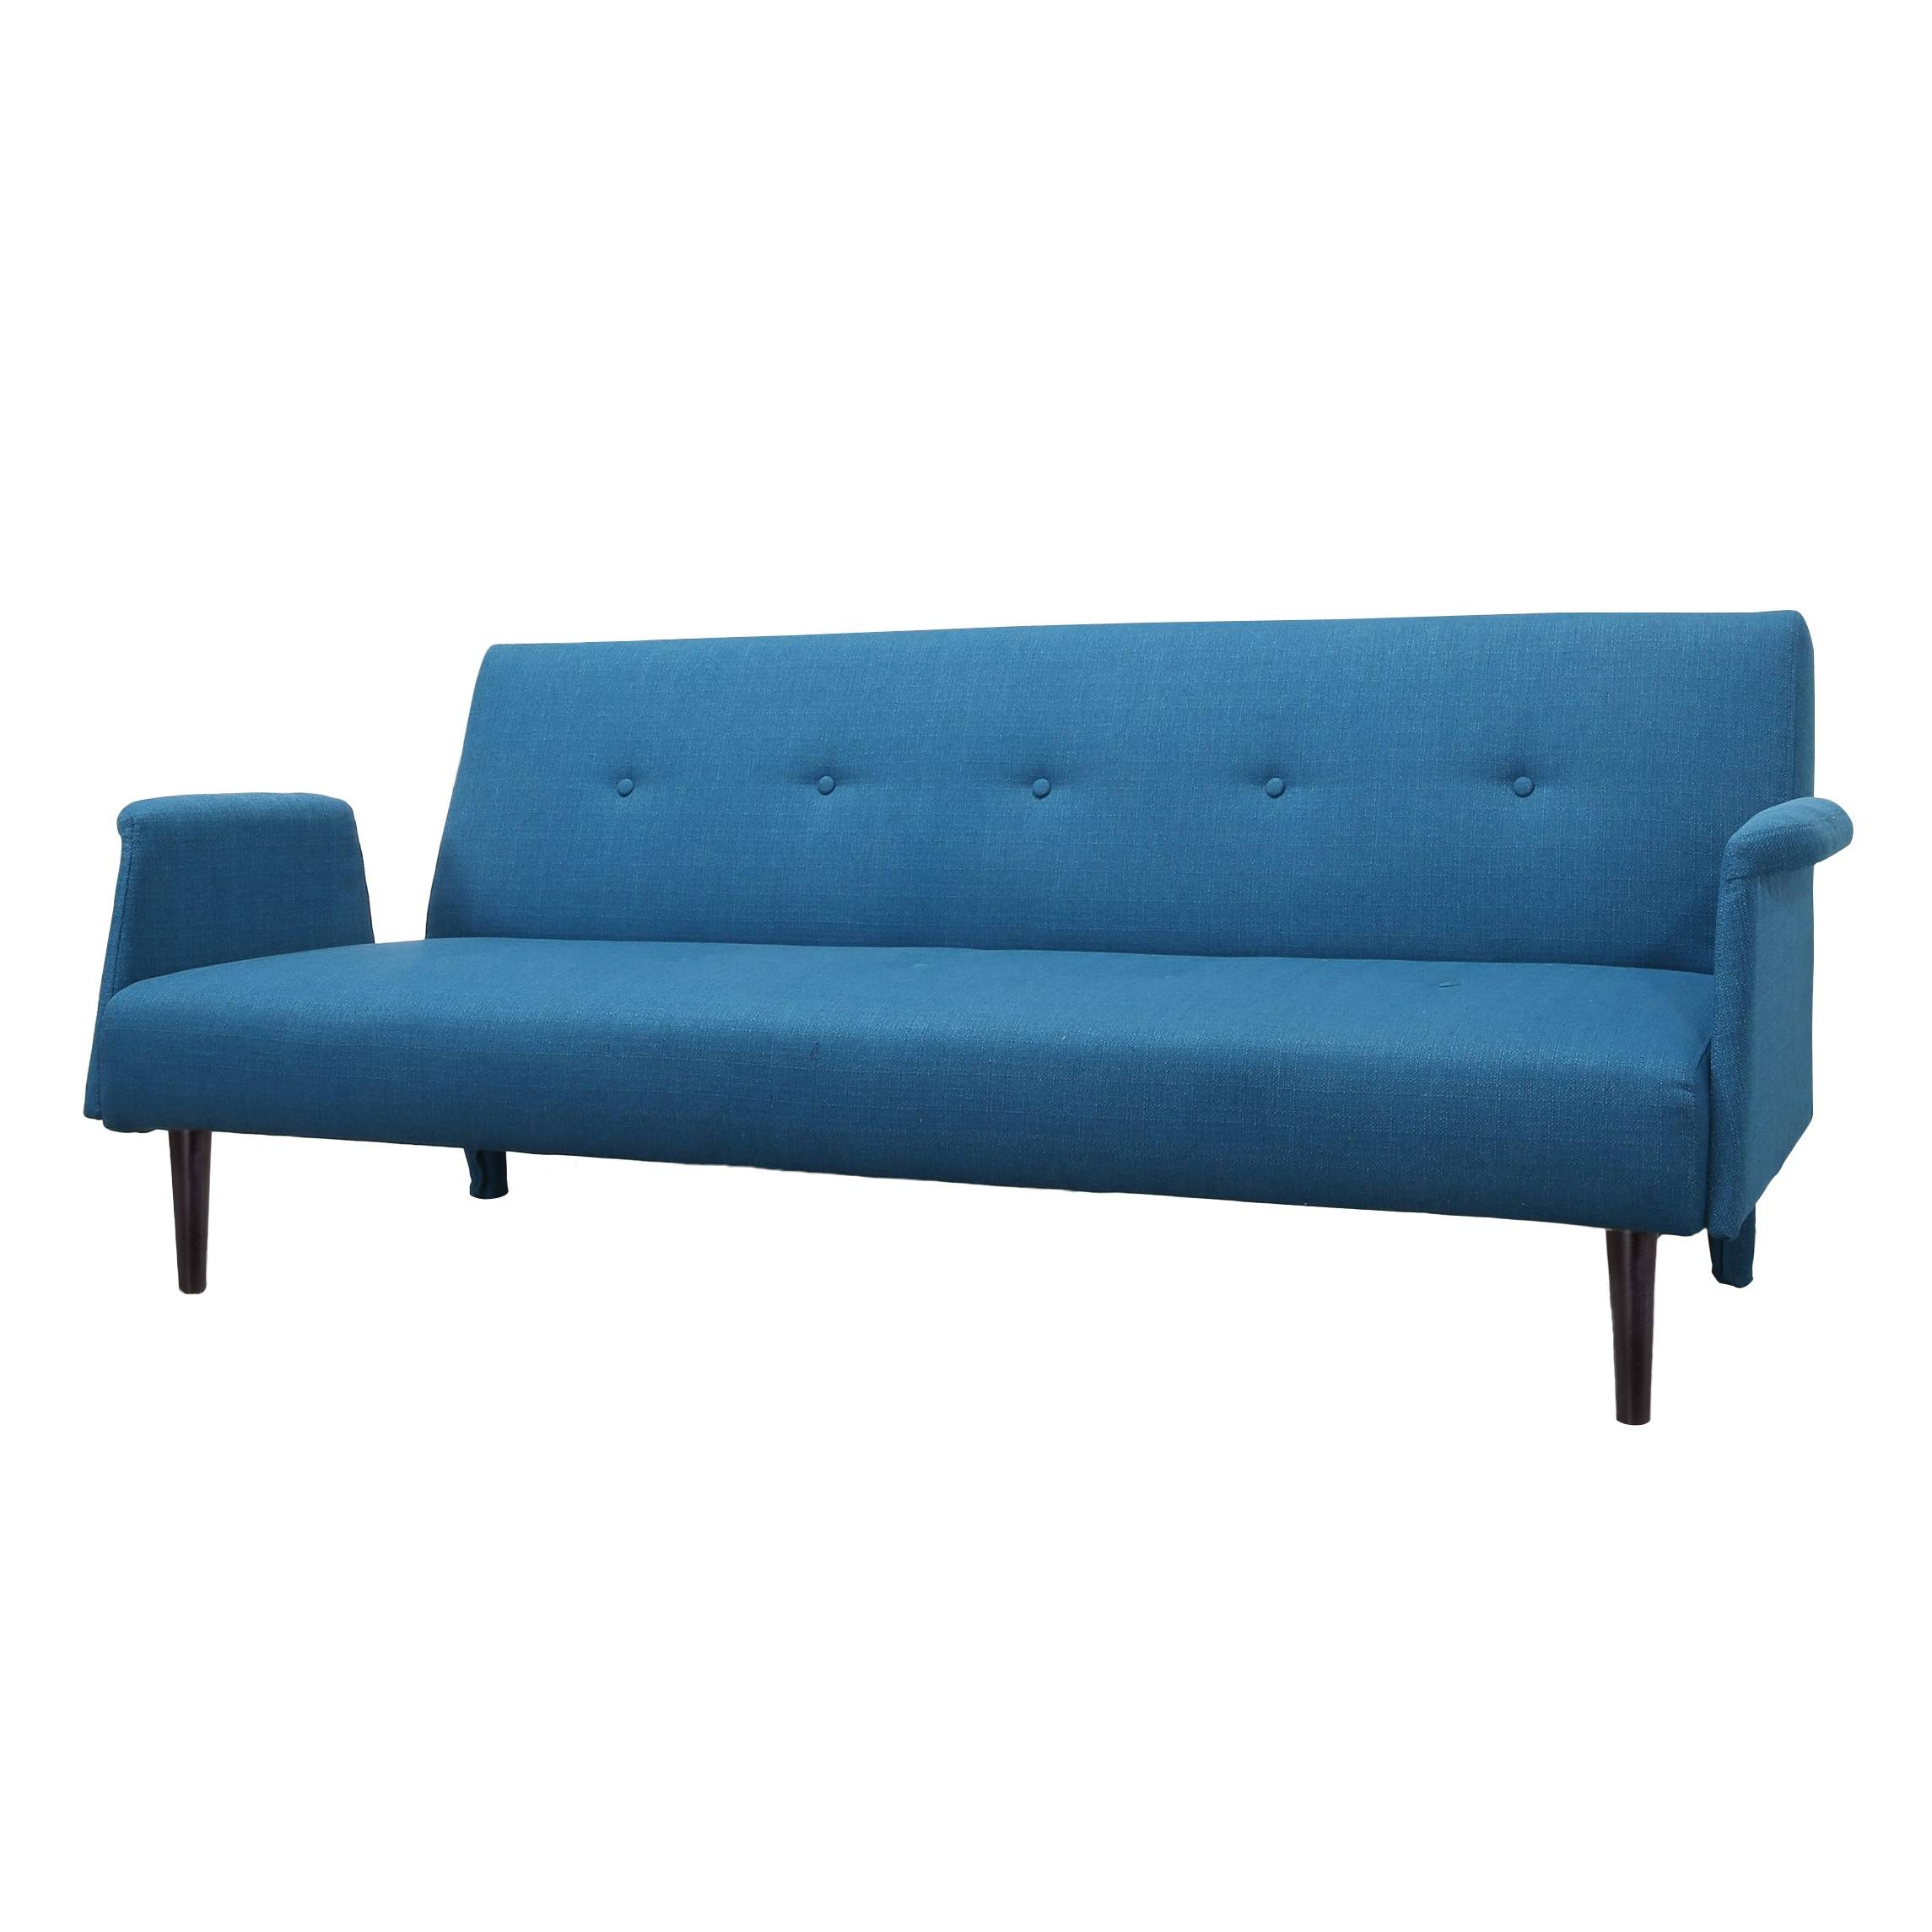 Furniture: Ava Velvet Tufted Sleeper Sofa | Walmart Sofa Sleeper with regard to Ava Tufted Sleeper Sofas (Image 4 of 15)